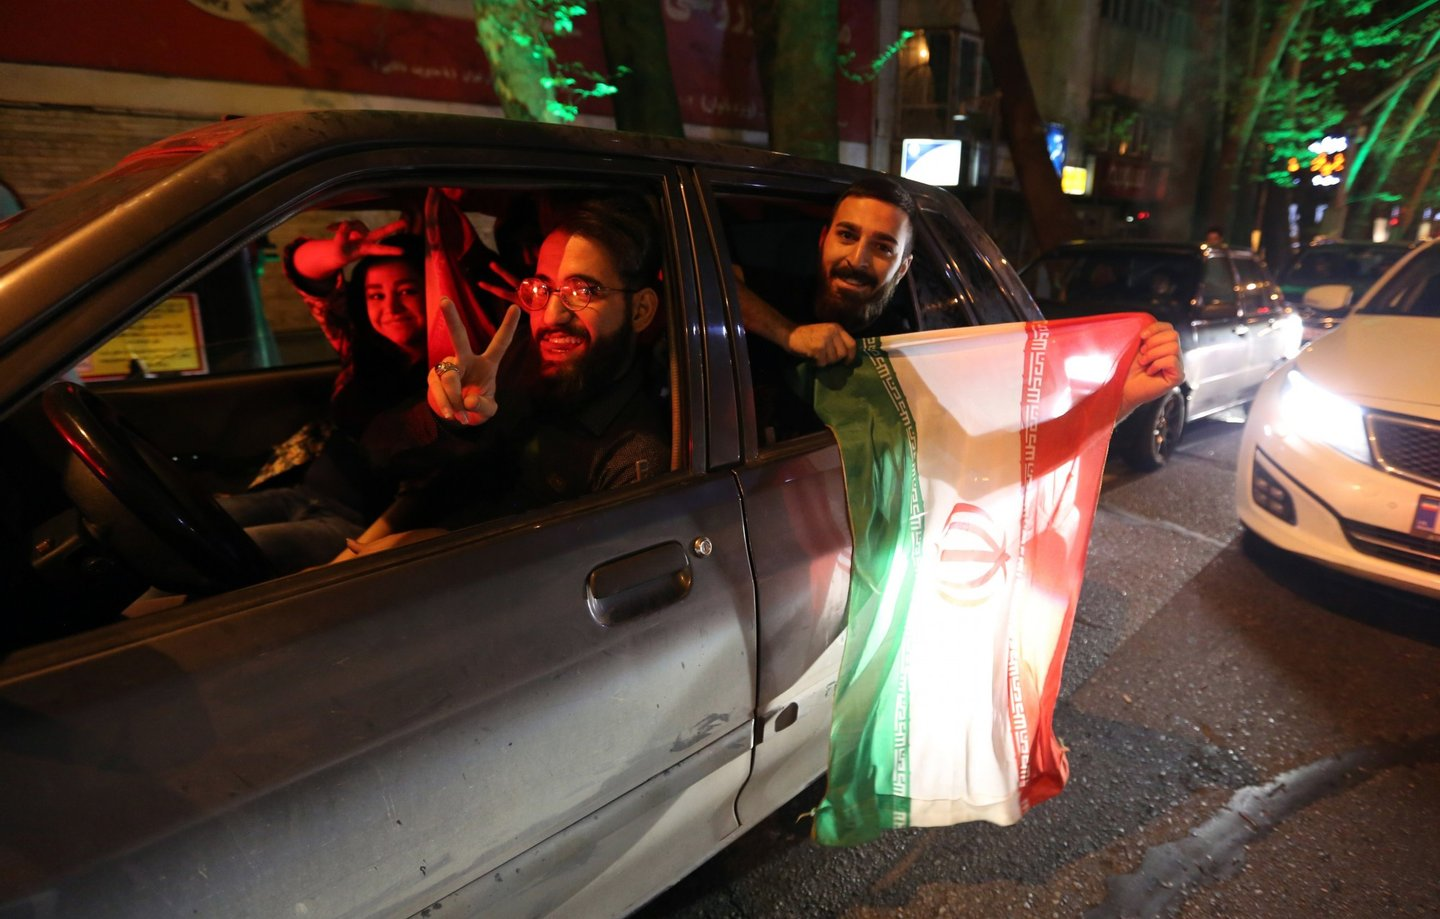 """People flash the """"V for Victory"""" sign and hold an Iranian flag out of a car window as they celebrate on Valiasr street in northern Tehran on April 2, 2015, after the announcement of an agreement on Iran nuclear talks. Iran and global powers sealed a deal on April 2 on plans to curb Tehran's chances for getting a nuclear bomb, laying the ground for a new relationship between the Islamic republic and the West. AFP PHOTO / ATTA KENARE        (Photo credit should read ATTA KENARE/AFP/Getty Images)"""